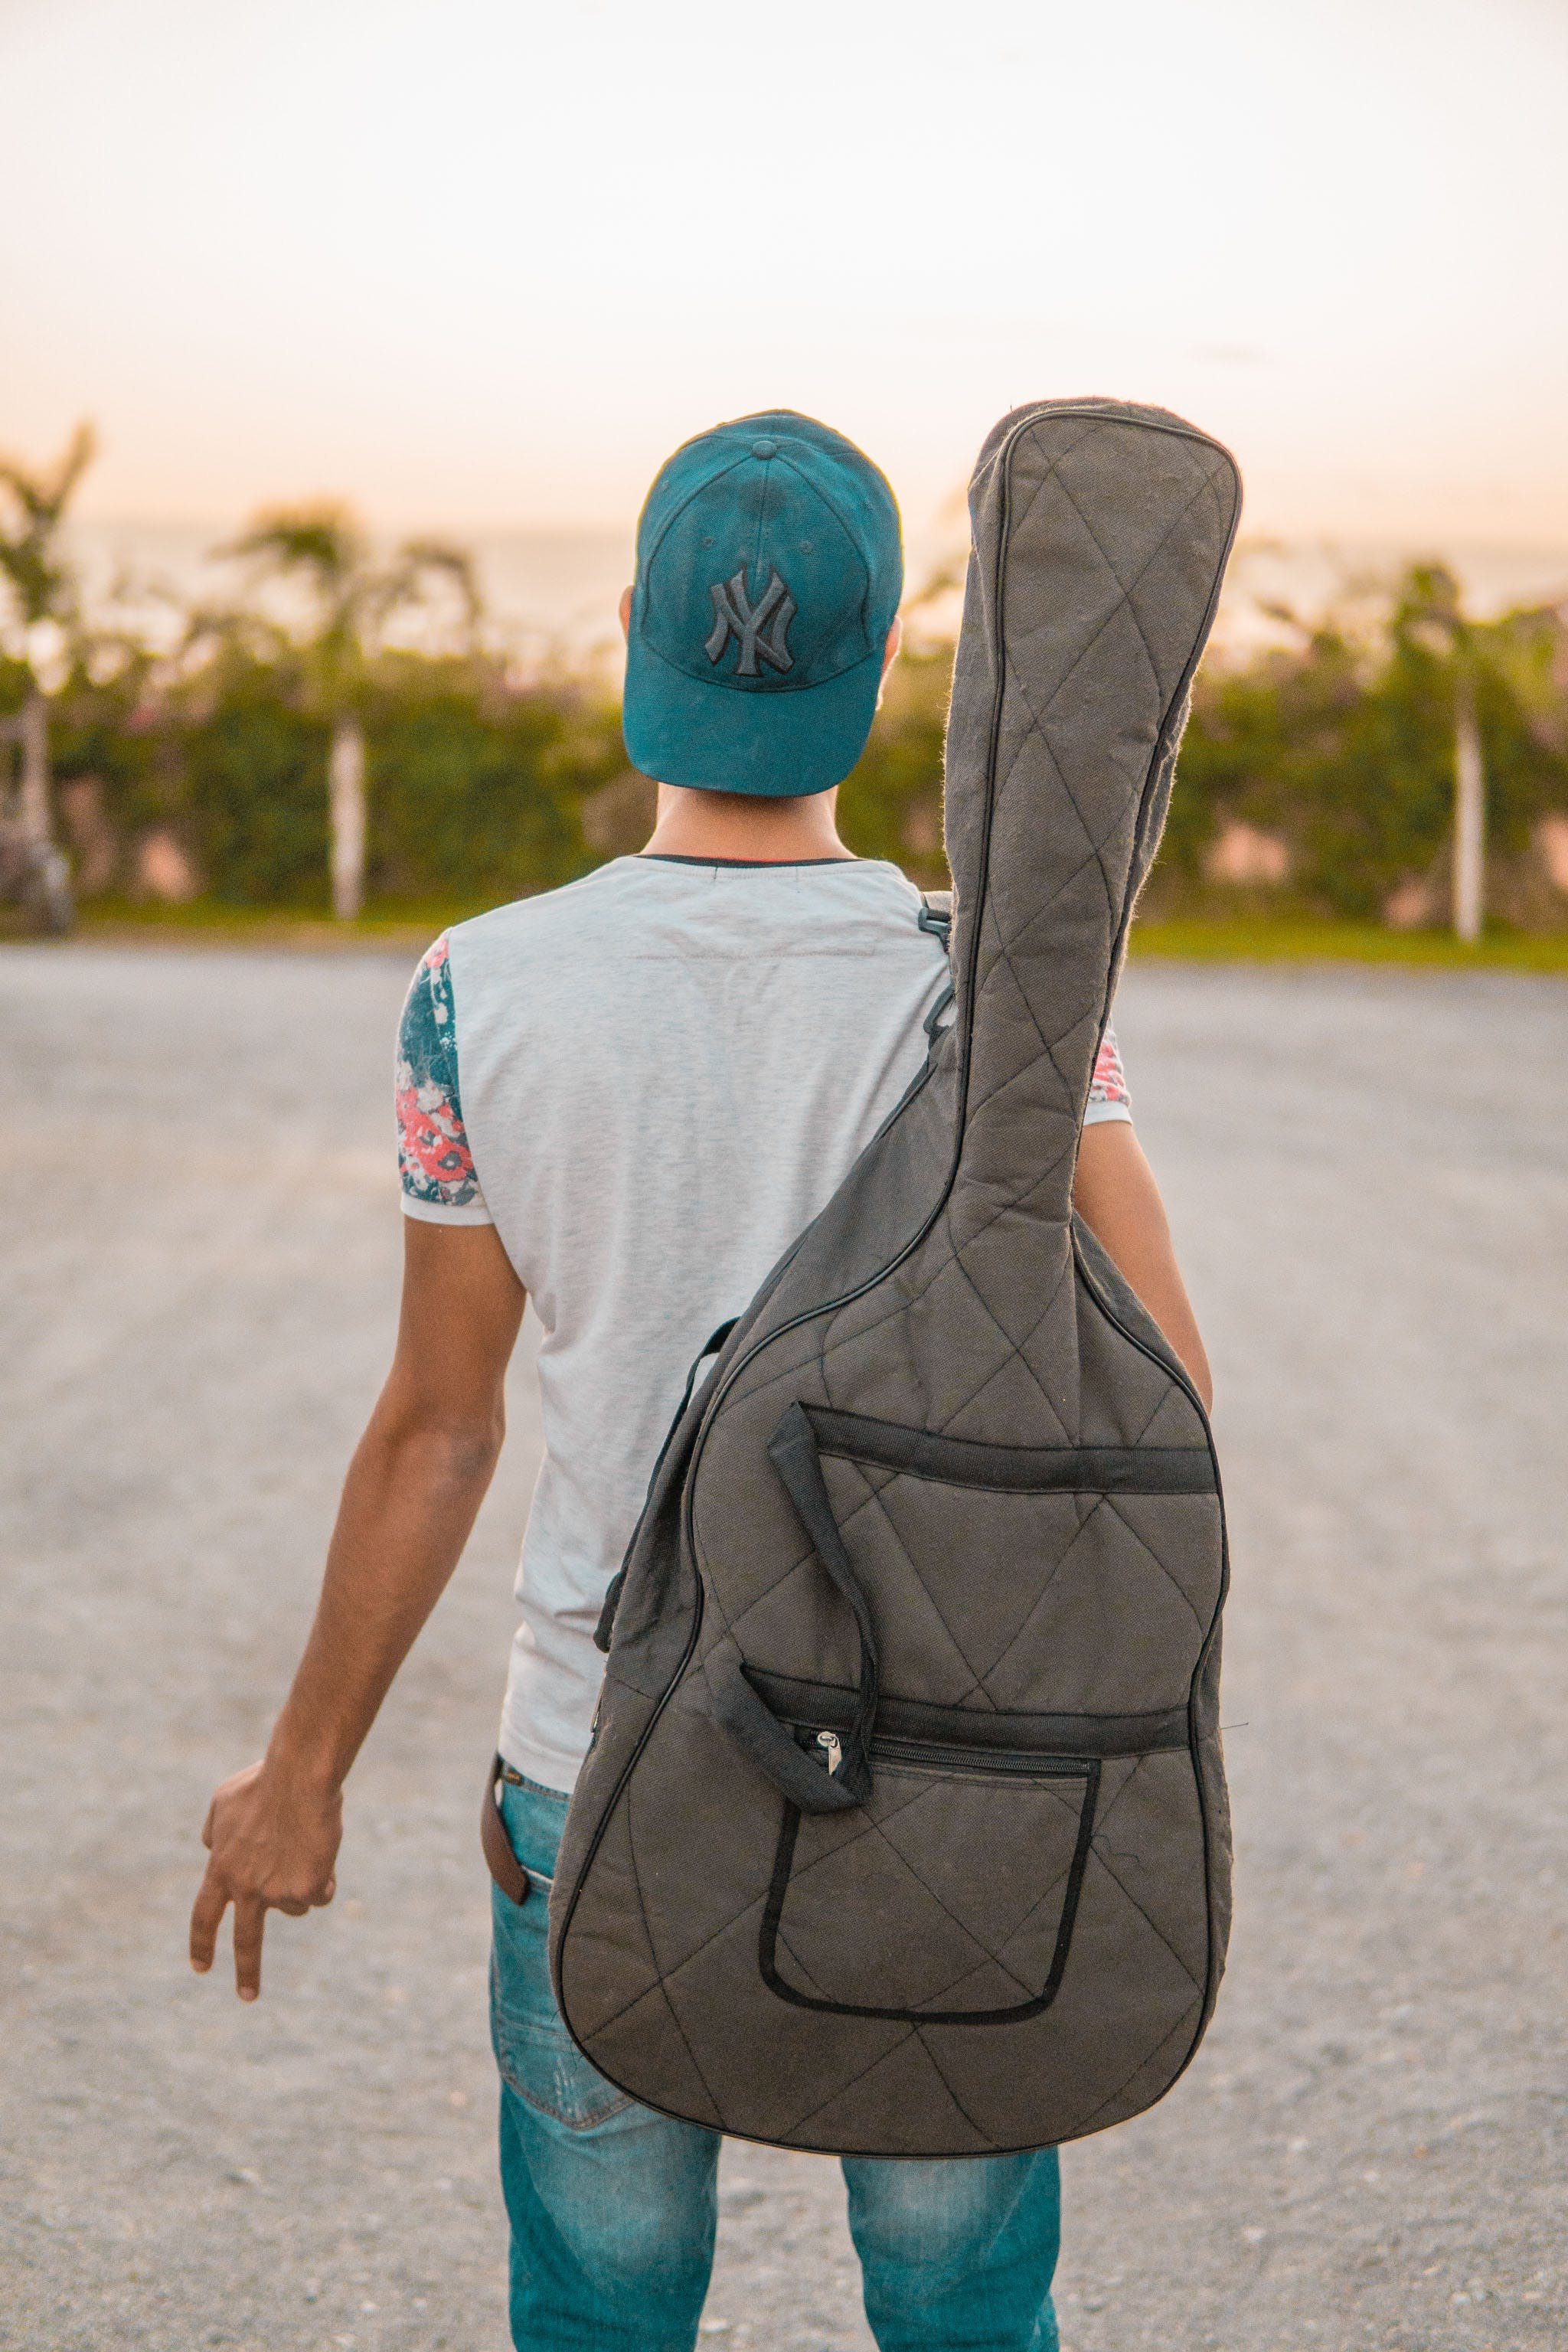 Selective Focus Photography of Man Holding Gig Bag